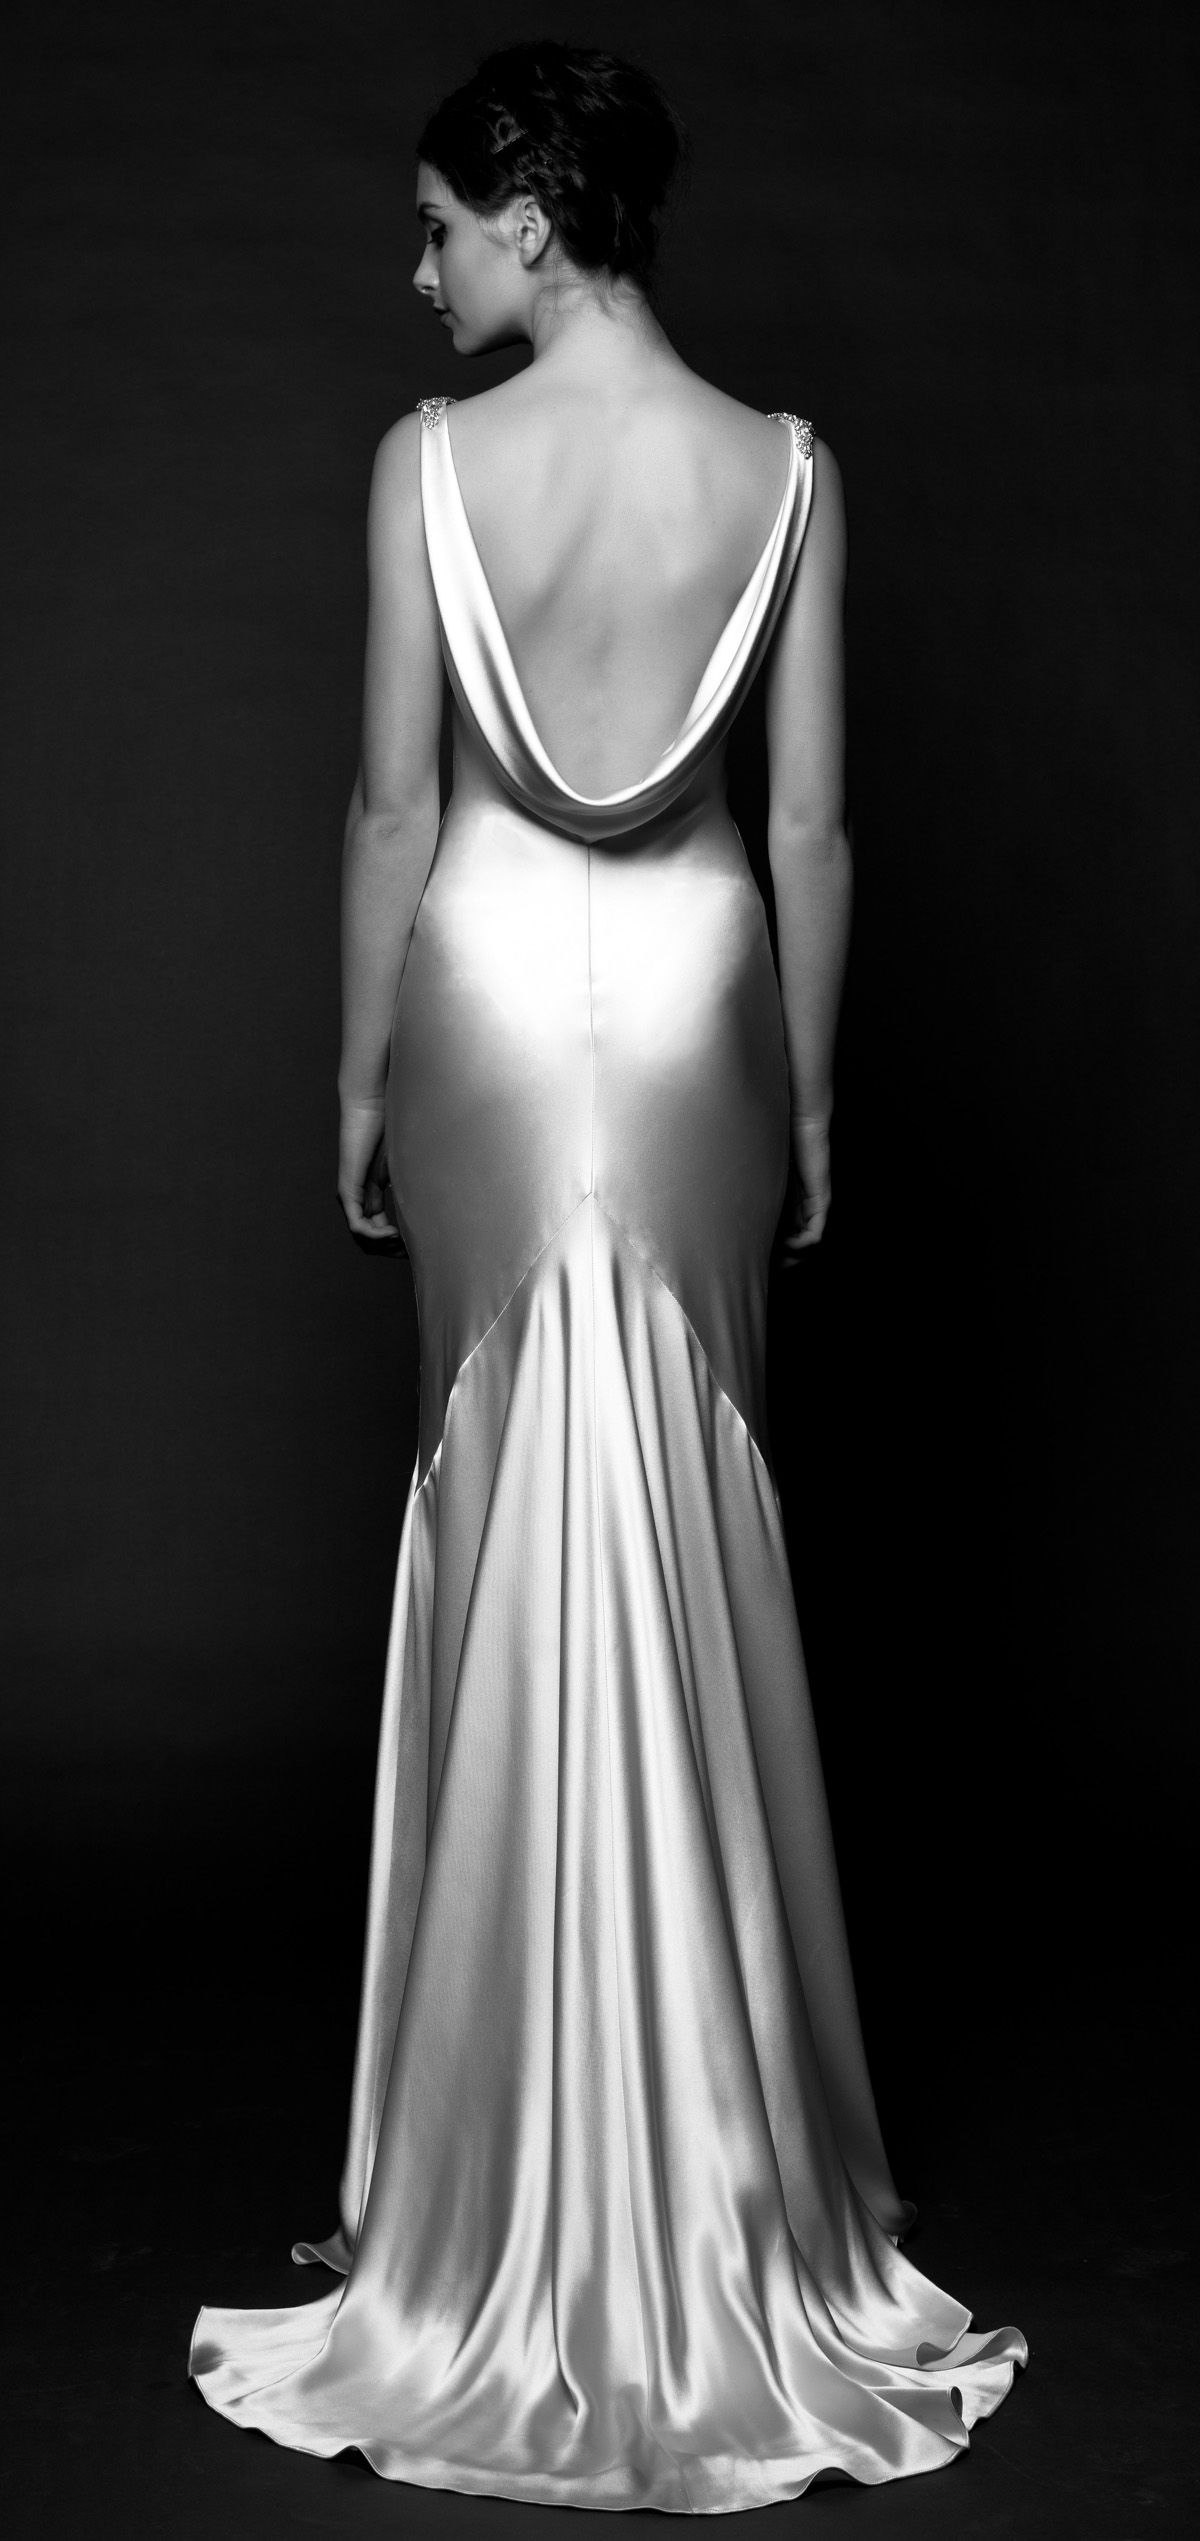 Daxa Wedding Gown Fluid Silk Charmeuse And Minimalist Architectural Seams Sculpt S Bewitching Shape